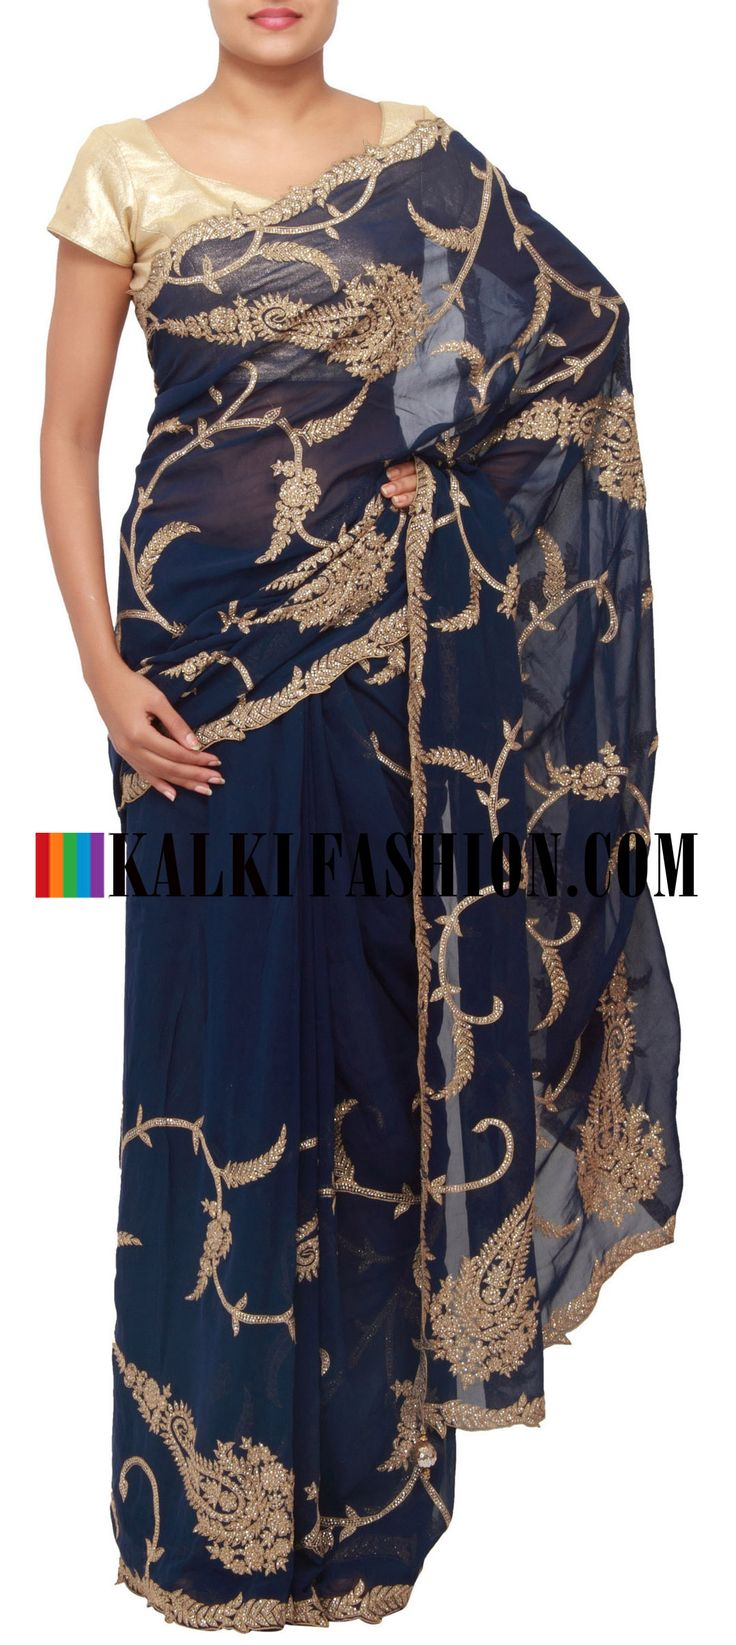 Get this beautiful saree here: http://www.kalkifashion.com/navy-blue-saree-embellished-in-sequence-only-on-kalki.html Free shipping worldwide.